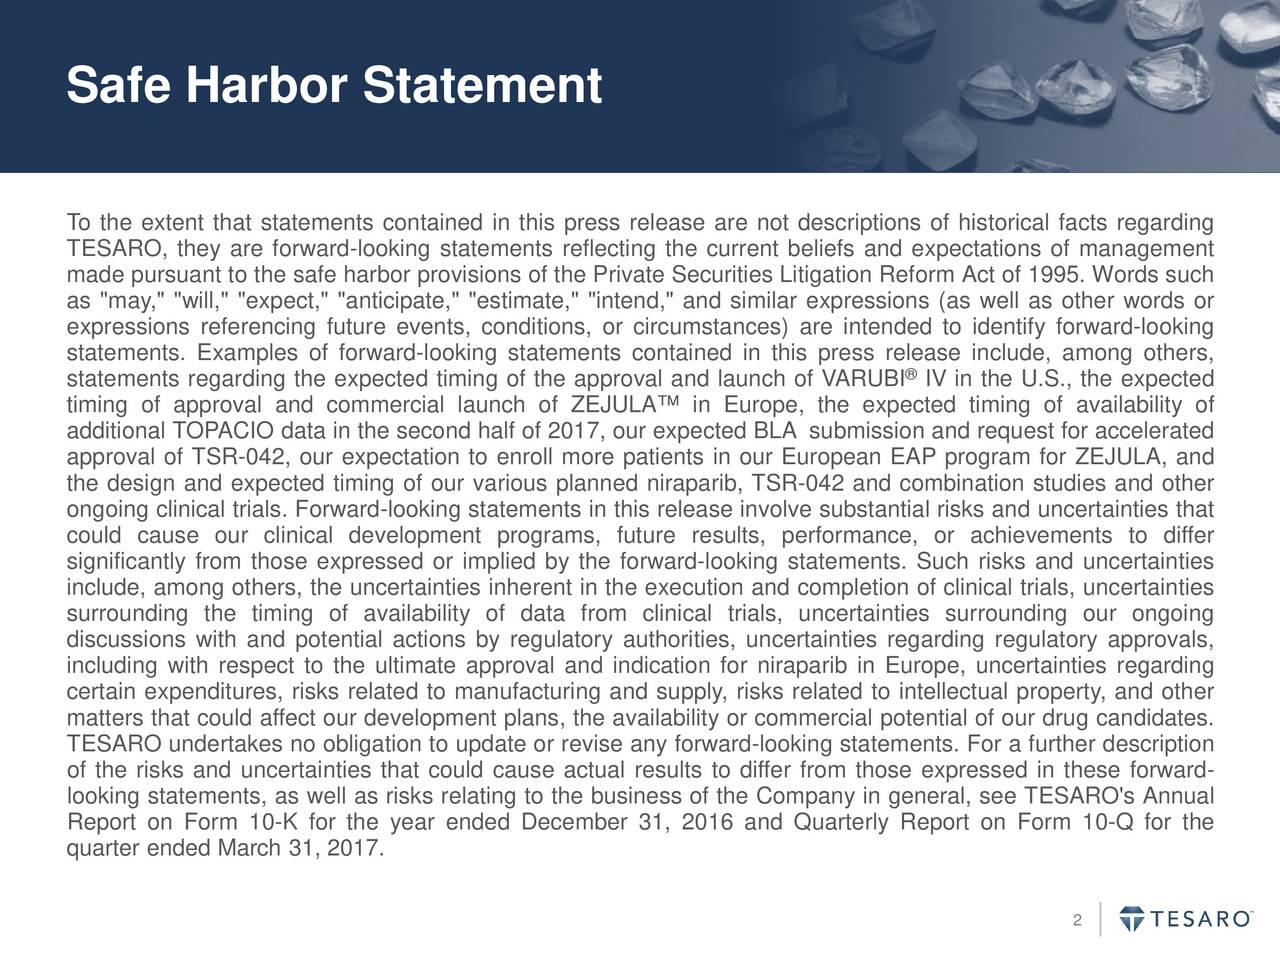 """To the extent that statements contained in this press release are not descriptions of historical facts regarding TESARO, they are forward-looking statements reflecting the current beliefs and expectations of management made pursuant to the safe harbor provisions of the Private Securities Litigation Reform Act of 1995. Words such as """"may,"""" """"will,"""" """"expect,"""" """"anticipate,"""" """"estimate,"""" """"intend,"""" and similar expressions (as well as other words or expressions referencing future events, conditions, or circumstances) are intended to identify forward-looking statements. Examples of forward-looking statements contained in this press relese include, among others, statements regarding the expected timing of the approval and launch of VARUBI IV in the U.S., the expected timing of approval and commercial launch of ZEJULA in Europe, the expected timing of availability of additional TOPACIO data in the second half of 2017, our expected BLA submission and request for accelerated approval of TSR-042, our expectation to enroll more patients in our European EAP program for ZEJULA, and the design and expected timing of our various planned niraparib, TSR-042 and combination studies and other ongoing clinical trials. Forward-looking statements in this release involve substantial risks and uncertainties that could cause our clinical development programs, future results, performance, or achievements to differ significantly from those expressed or implied by the forward-looking statements. Such risks and uncertainties include, among others, the uncertainties inherent in the execution and completion of clinical trials, uncertainties surrounding the timing of availability of data from clinical trials, uncertainties surrounding our ongoing discussions with and potential actions by regulatory authorities, uncertainties regarding regulatory approvals, including with respect to the ultimate approval and indication for niraparib in Europe, uncertainties regarding certain expenditures, risks related"""